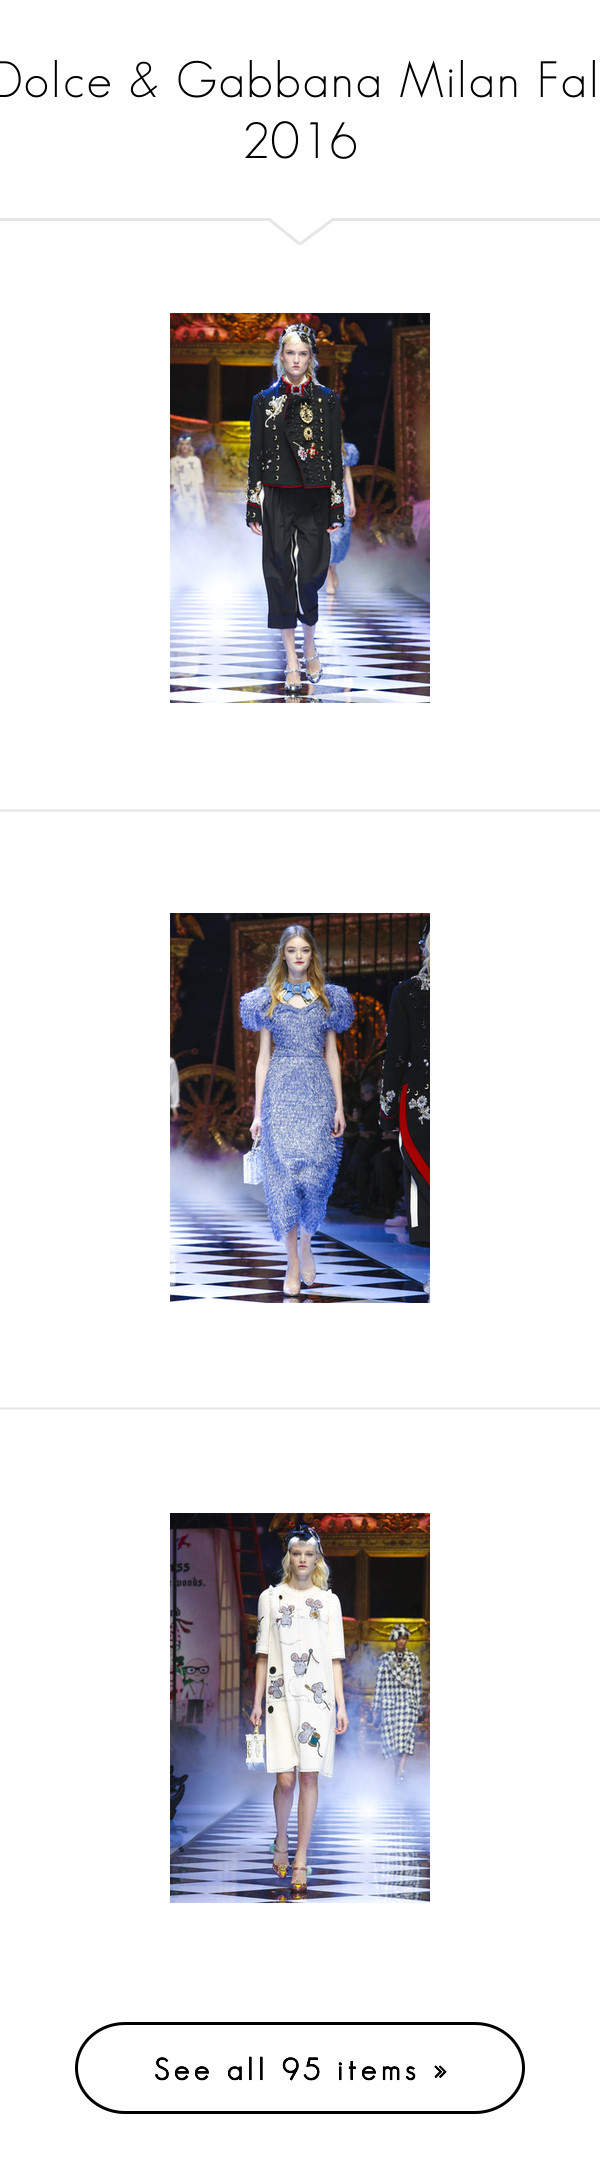 """""""Dolce & Gabbana Milan Fall 2016"""" by watereverysunday ❤ liked on Polyvore featuring logo, text, words, brands, quotes, article, magazine, saying, filler and phrase"""